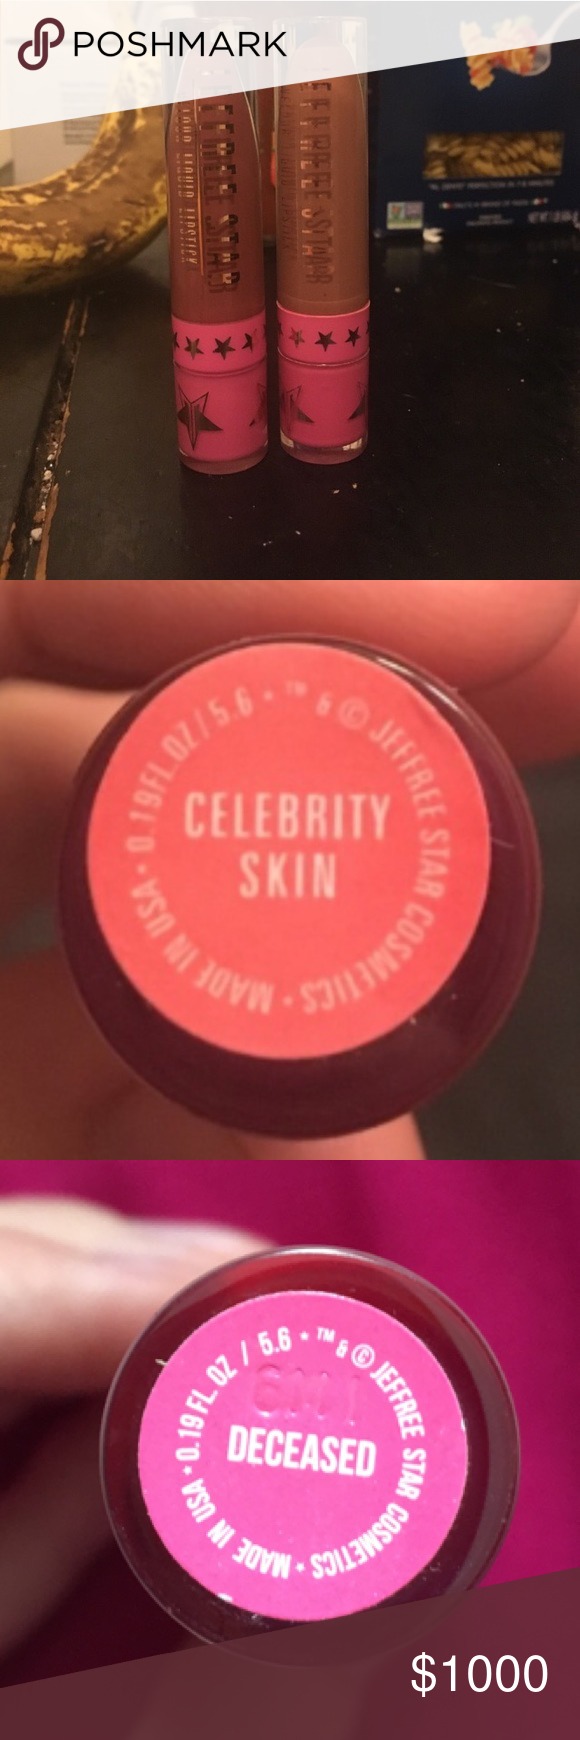 Be aware of fake makeup claimed as authentic Fake makeup